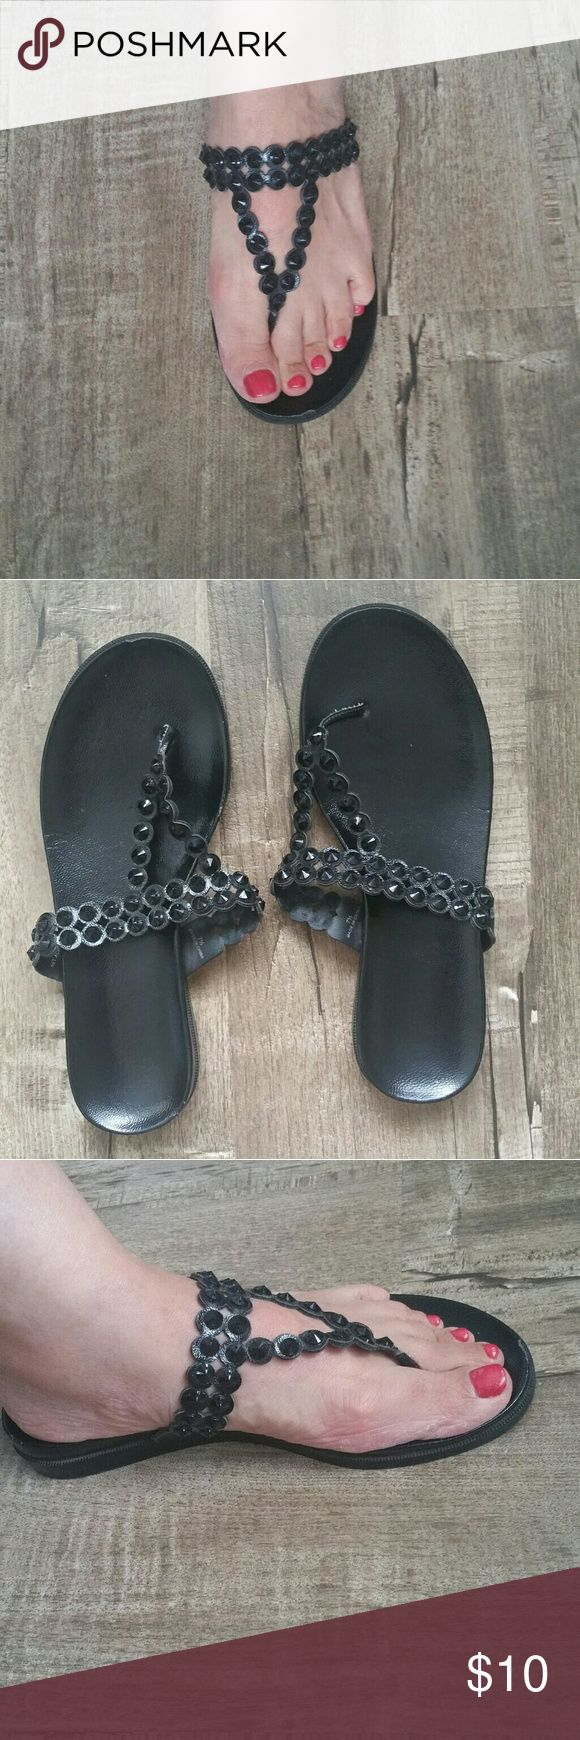 Reaction Black Rhinestone Sandals Rhinestones straps Good condition  Hardly Worn Reaction Shoes Sandals